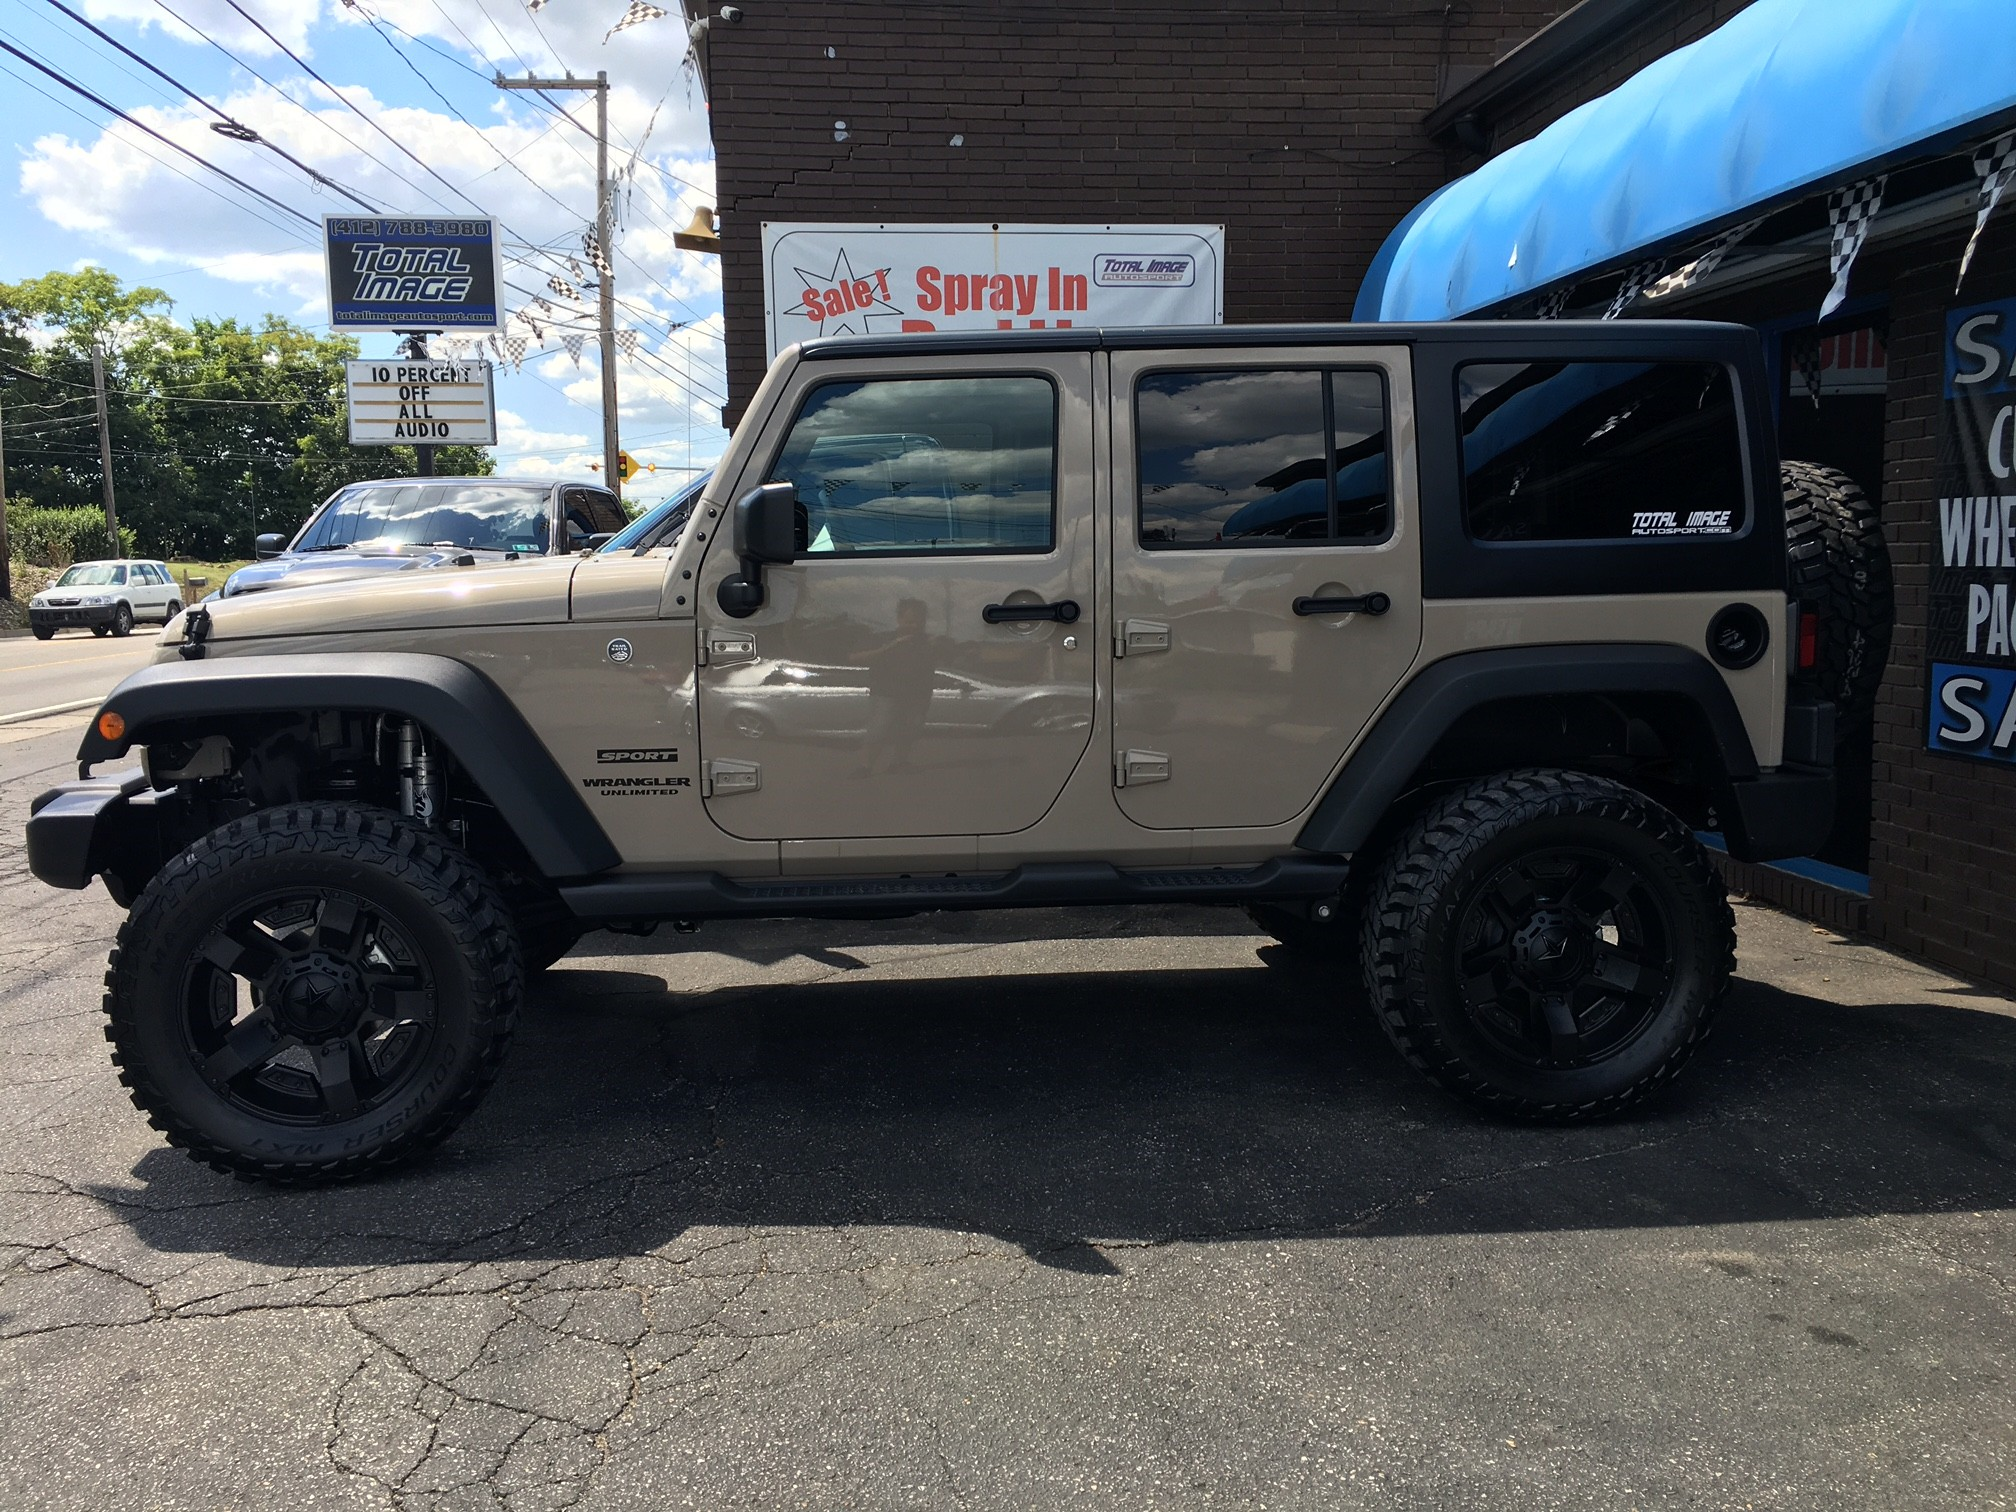 kmc a pa rockstar pittsburgh and mastercrsft wheels total kits inch brands sport wrangler photo img gallery tires lift auto jeep mxt ii with xd image